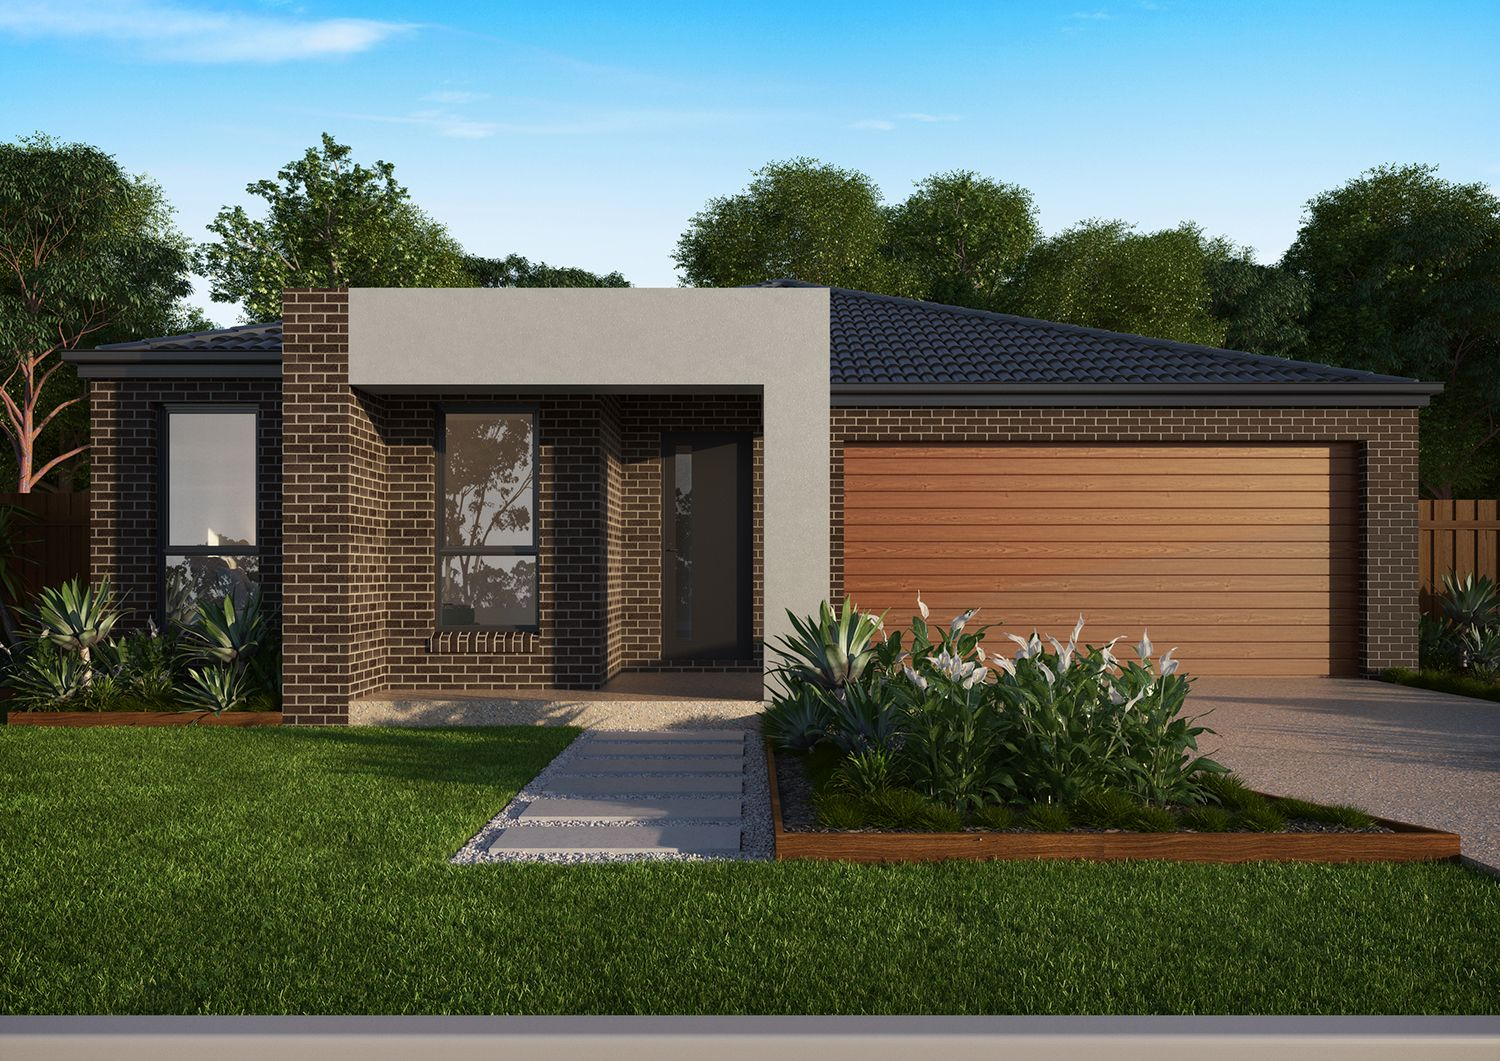 Lot 173 Morningside Drive, Rockdale Estate, Rockbank VIC 3335, Image 0